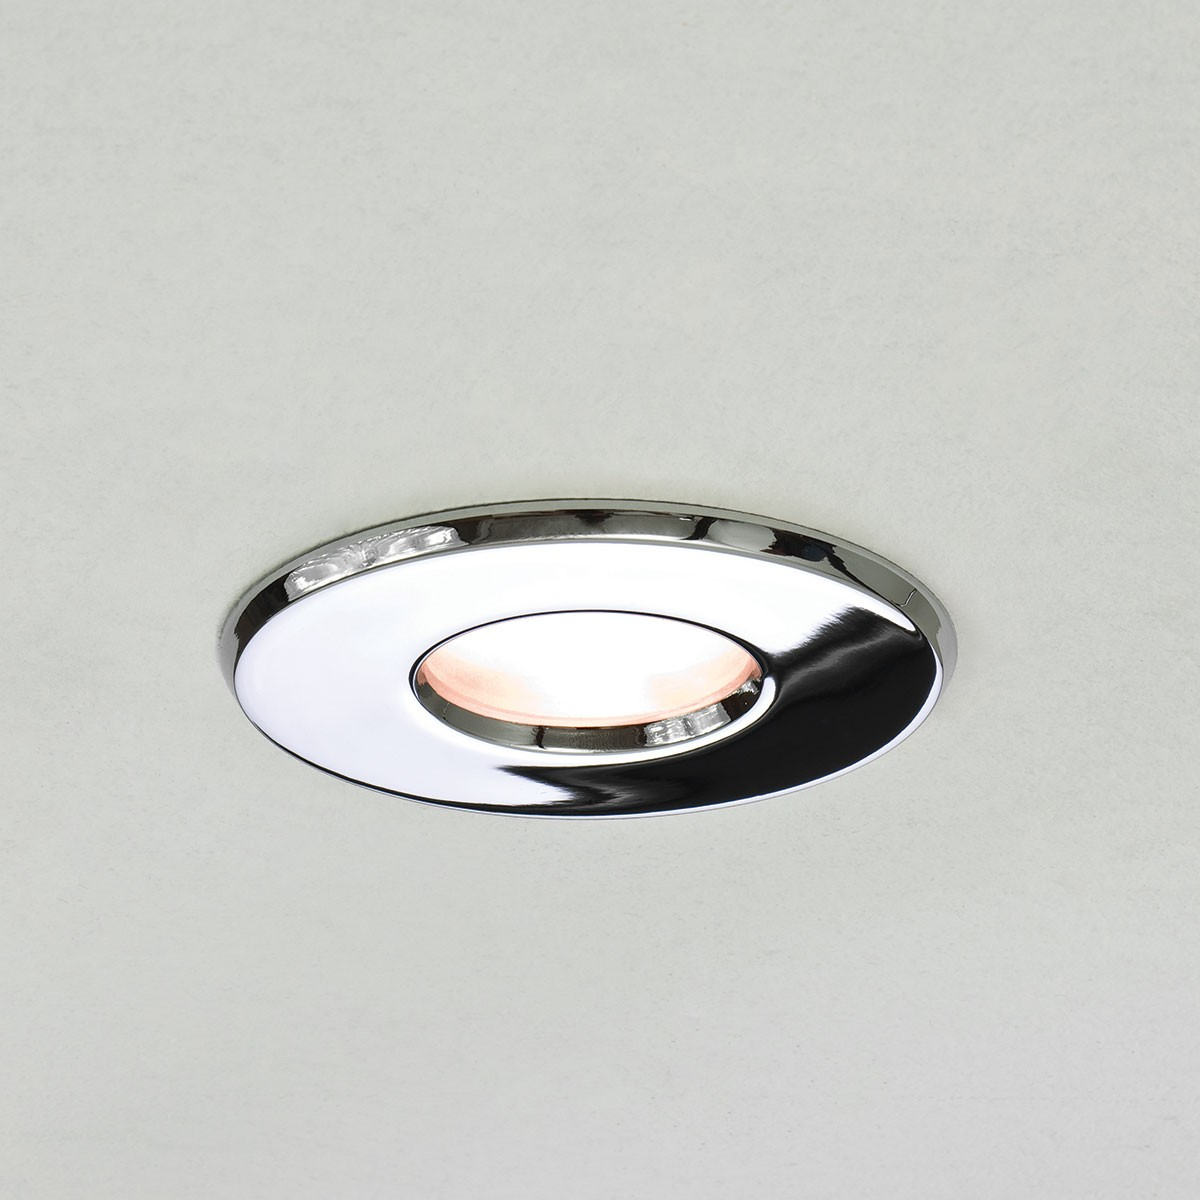 Bathroom Lights Gu10 bathroom gu10 downlights astro kos gu10 led cfl painted silver